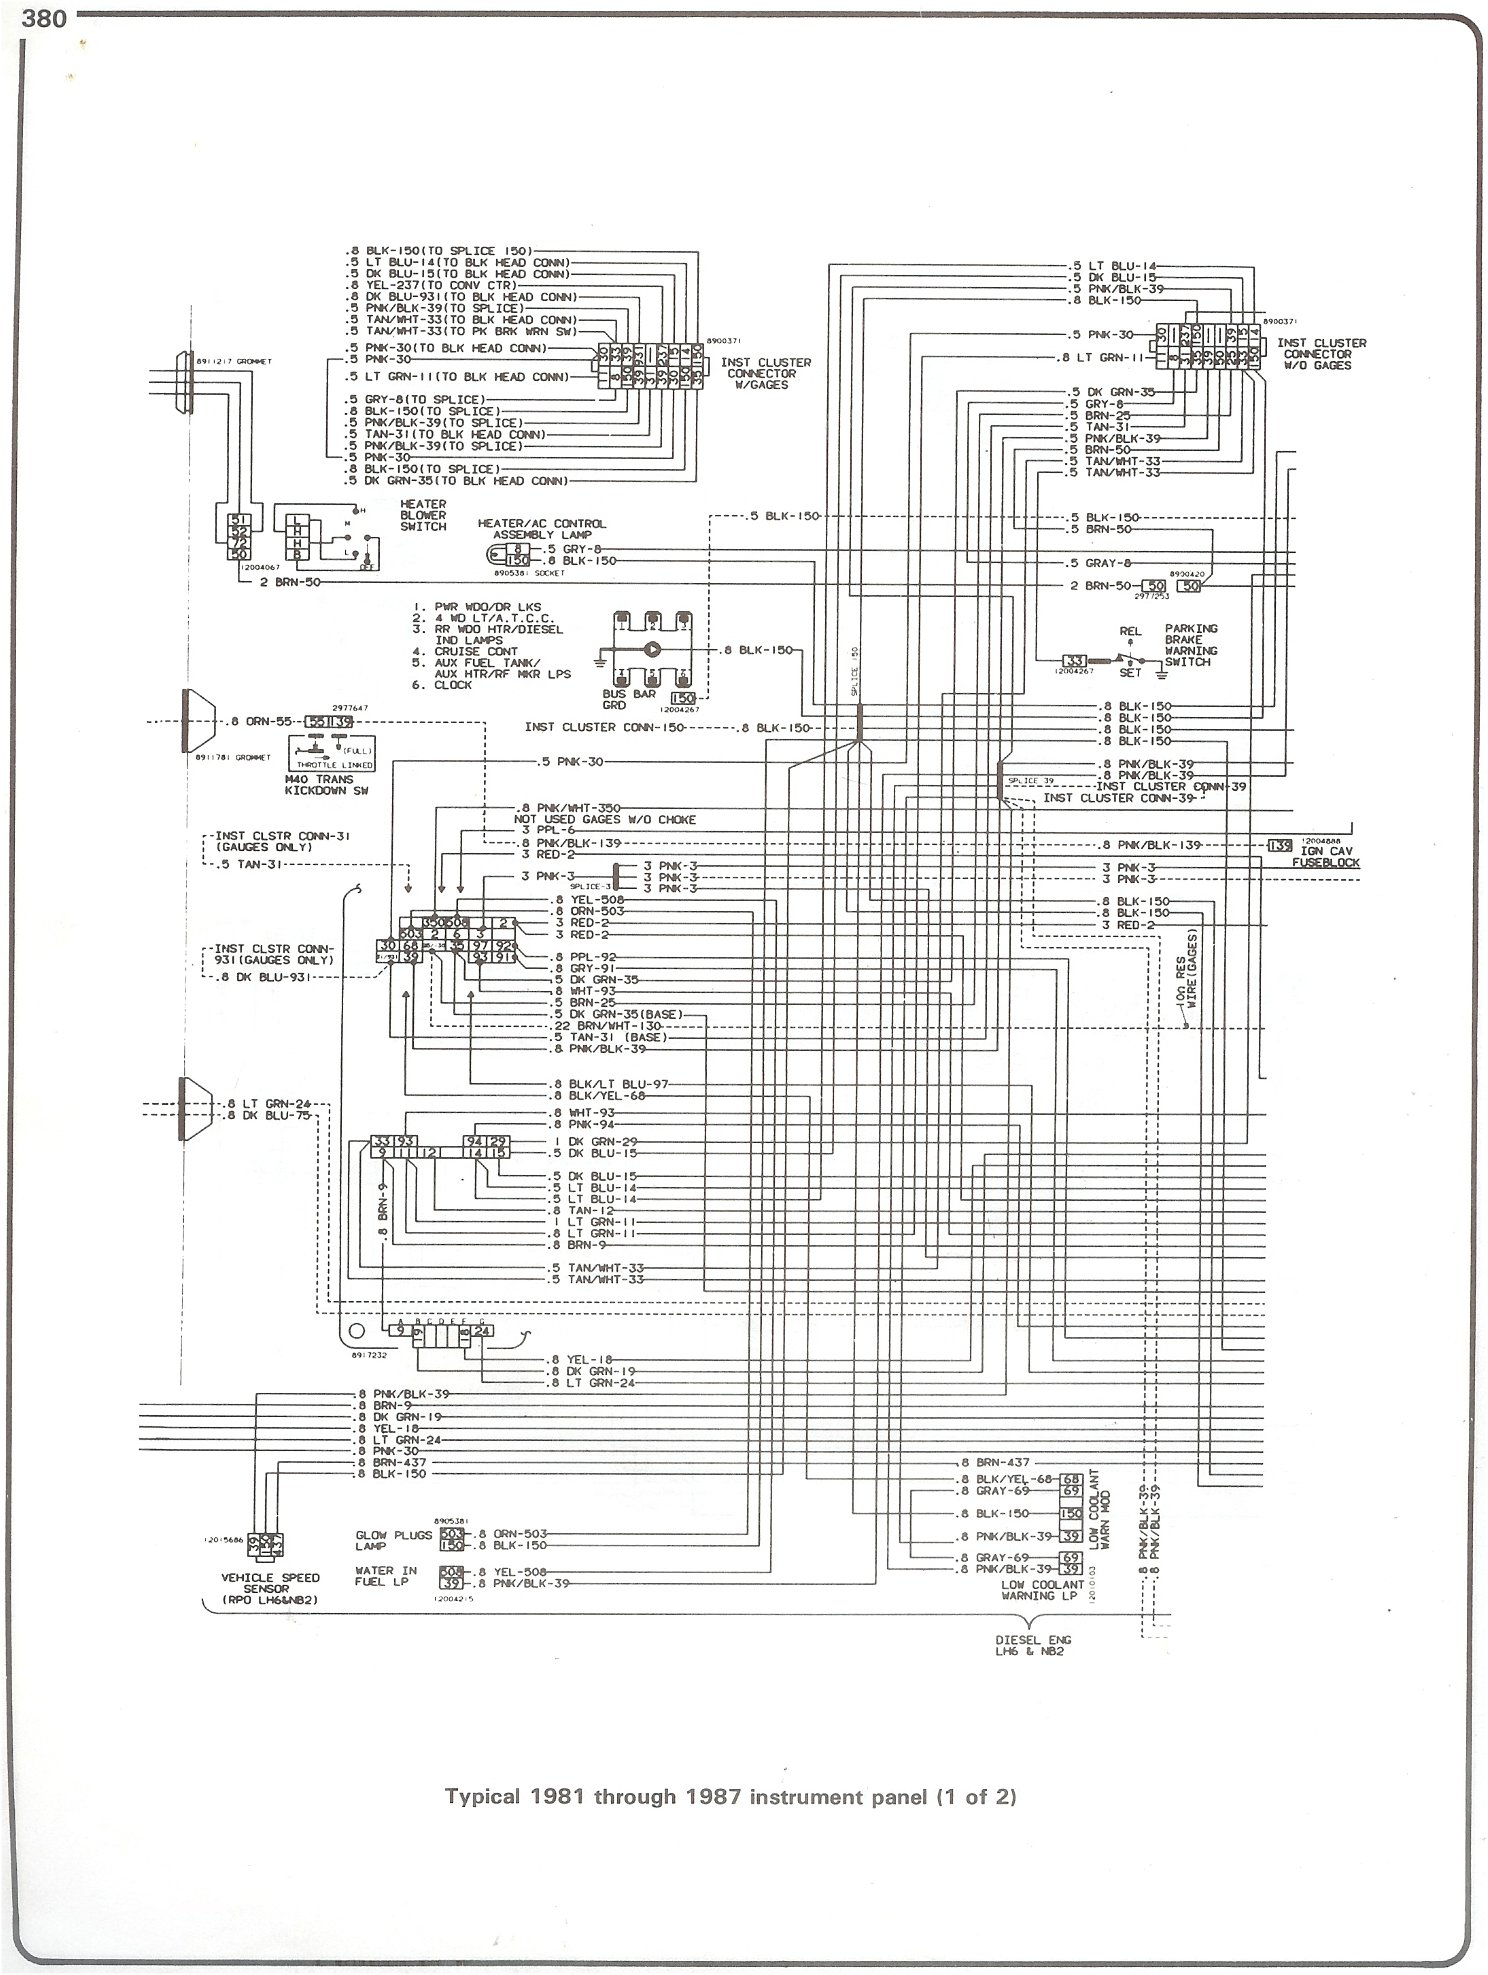 85 chevy silverado wiring diagram 2000 mitsubishi galant stereo electrical diagrams only page 2 truck forum